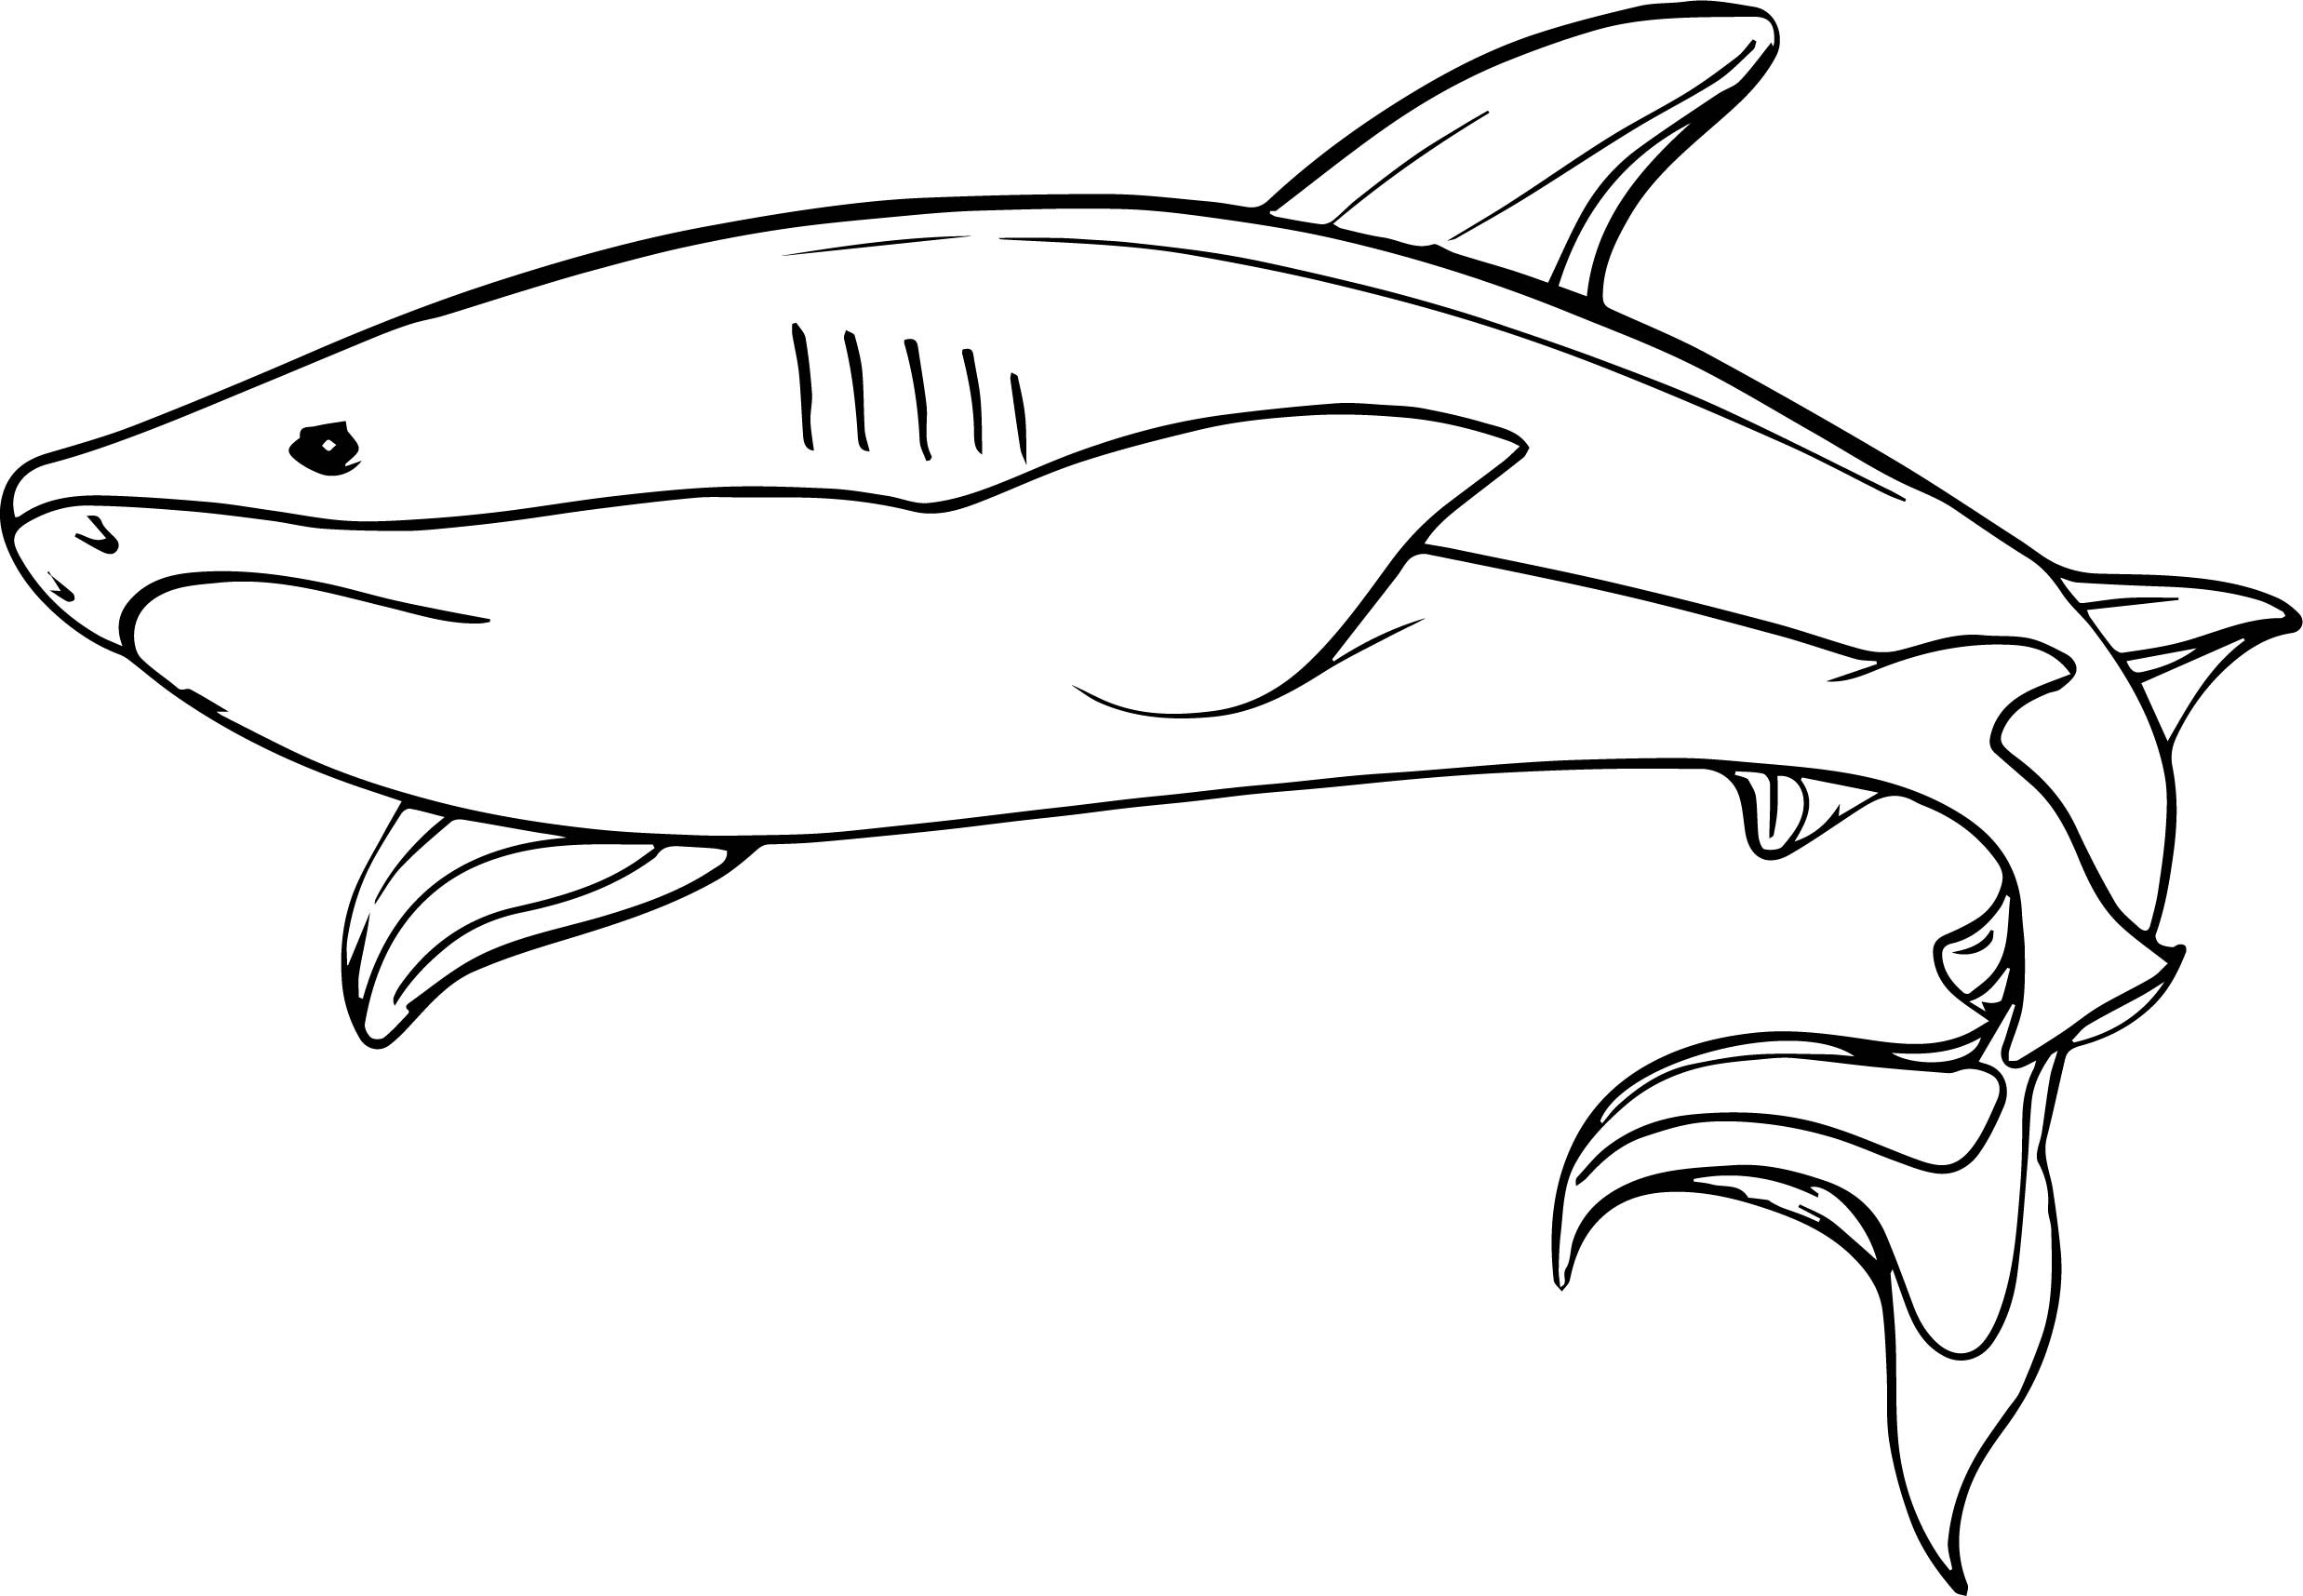 Underwater Shark Coloring Page | Wecoloringpage.com